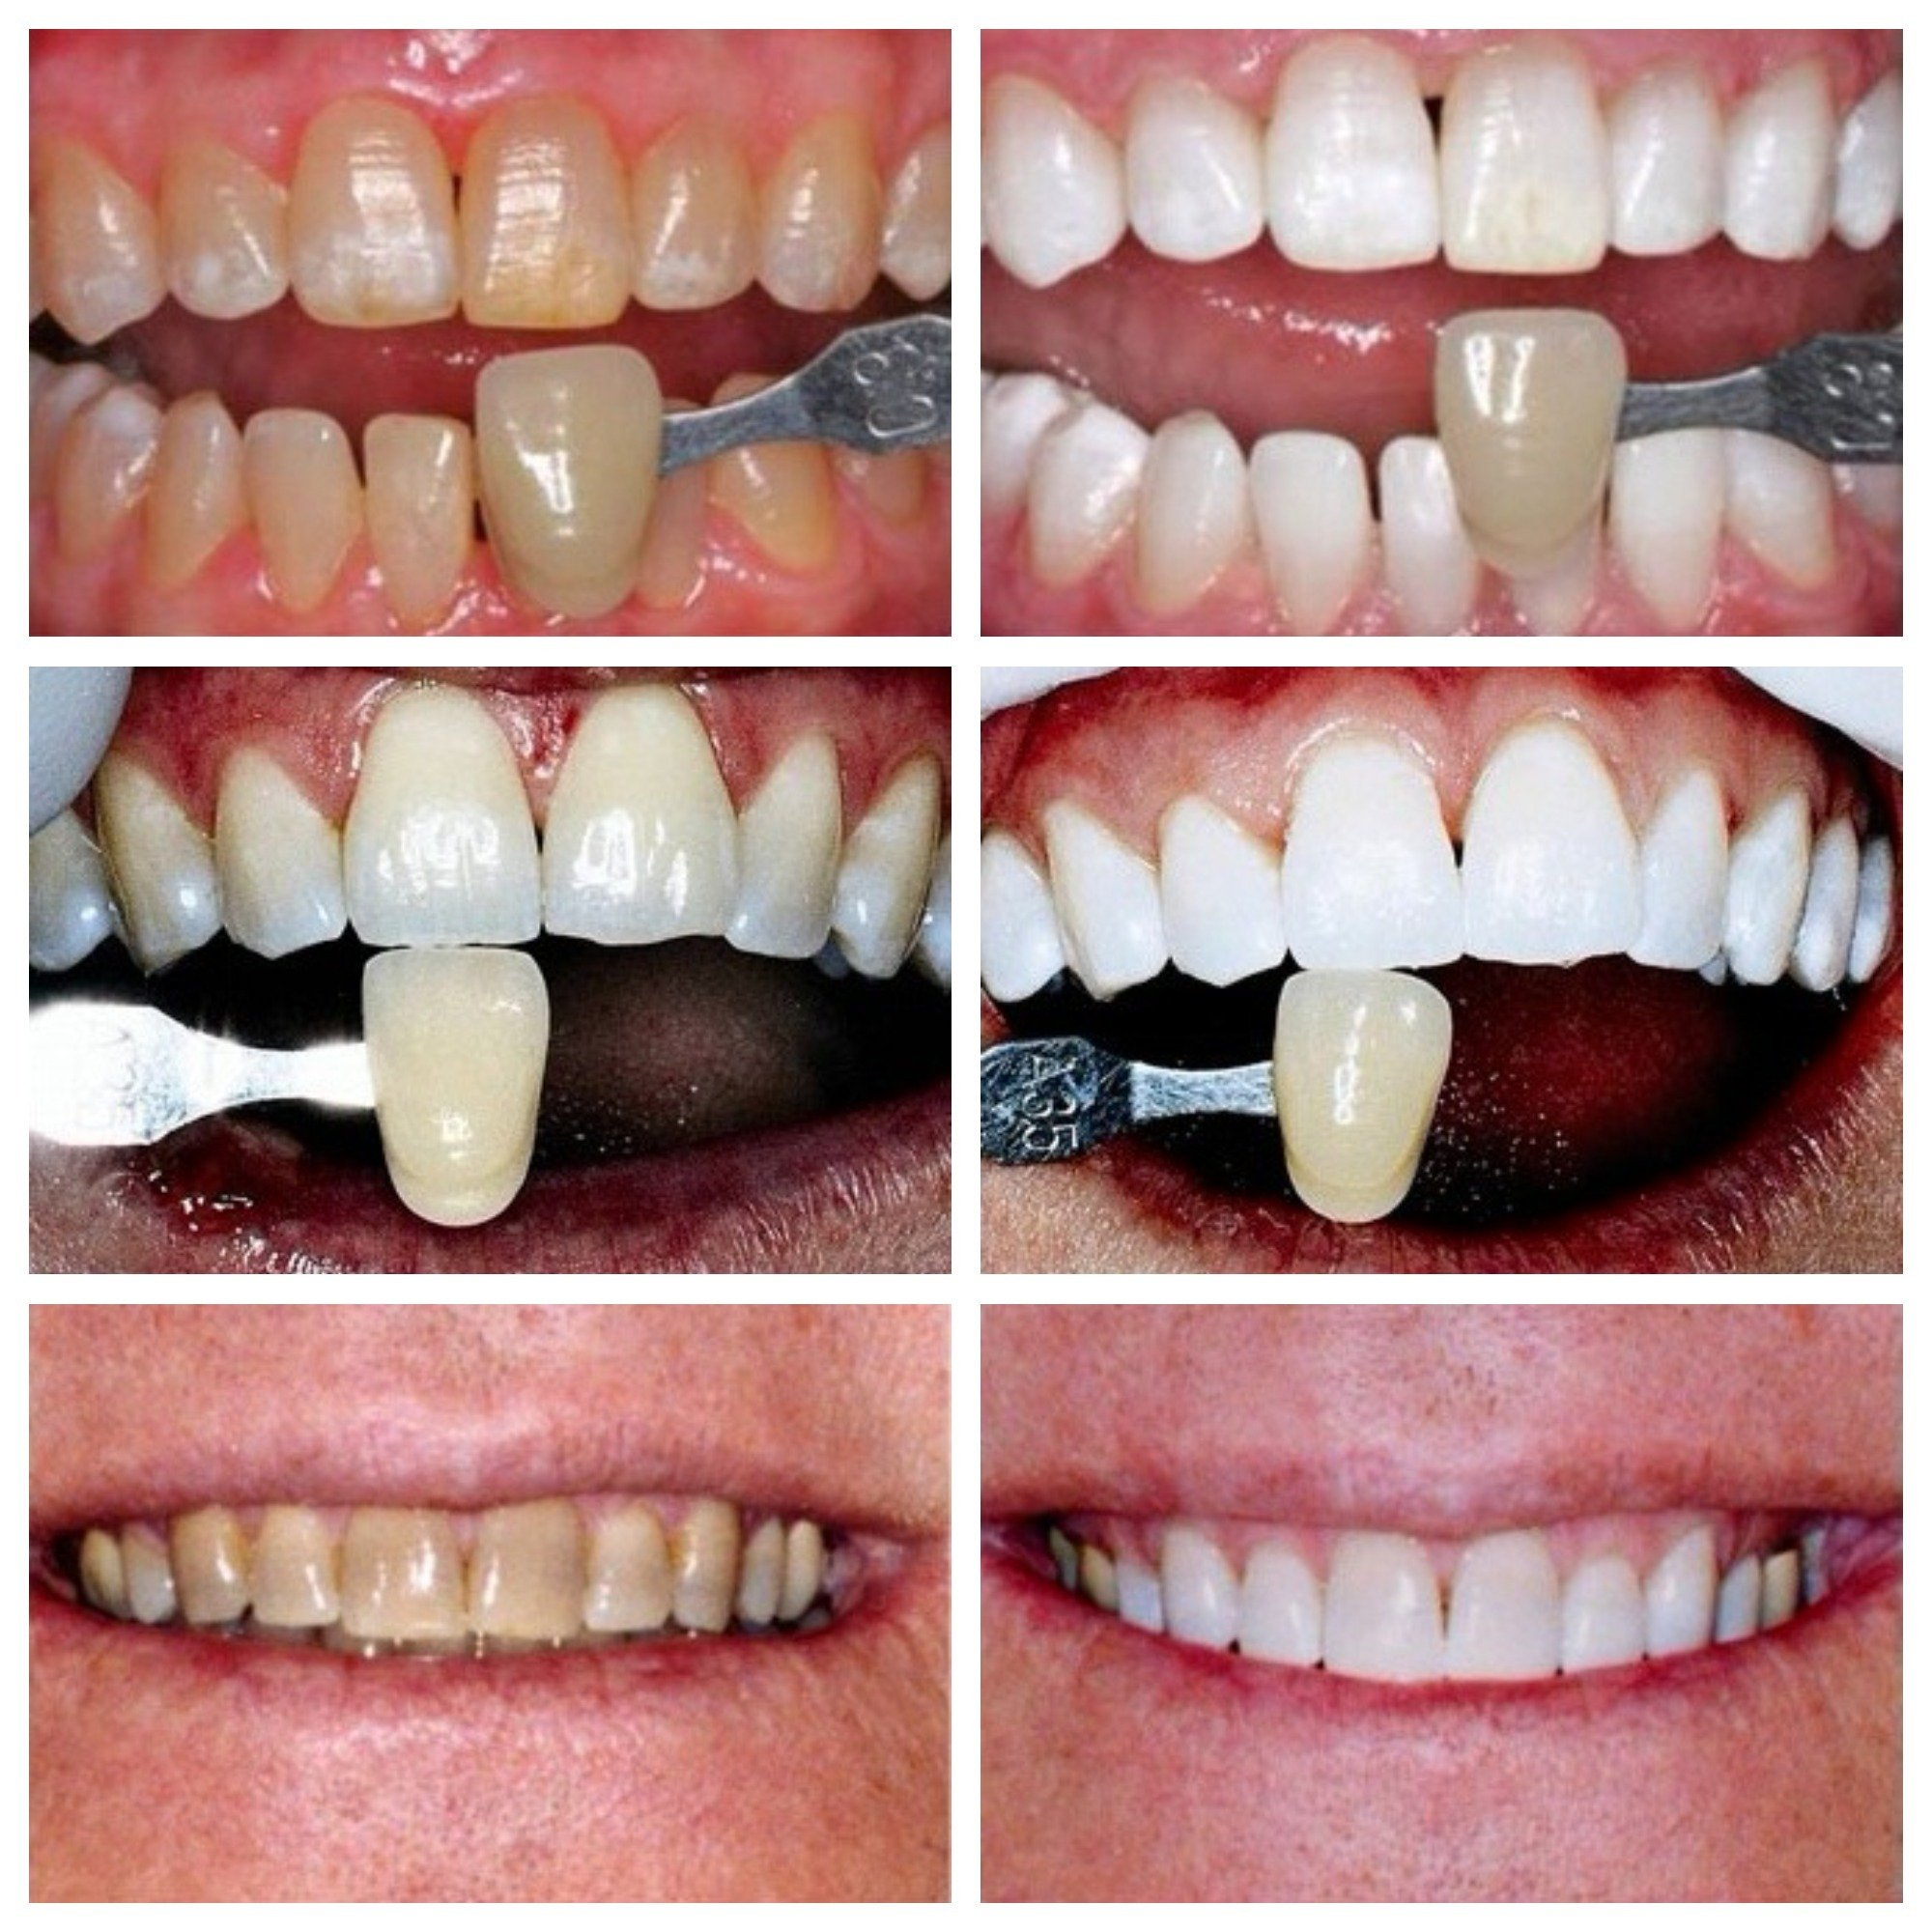 KöR Whitening Before and After